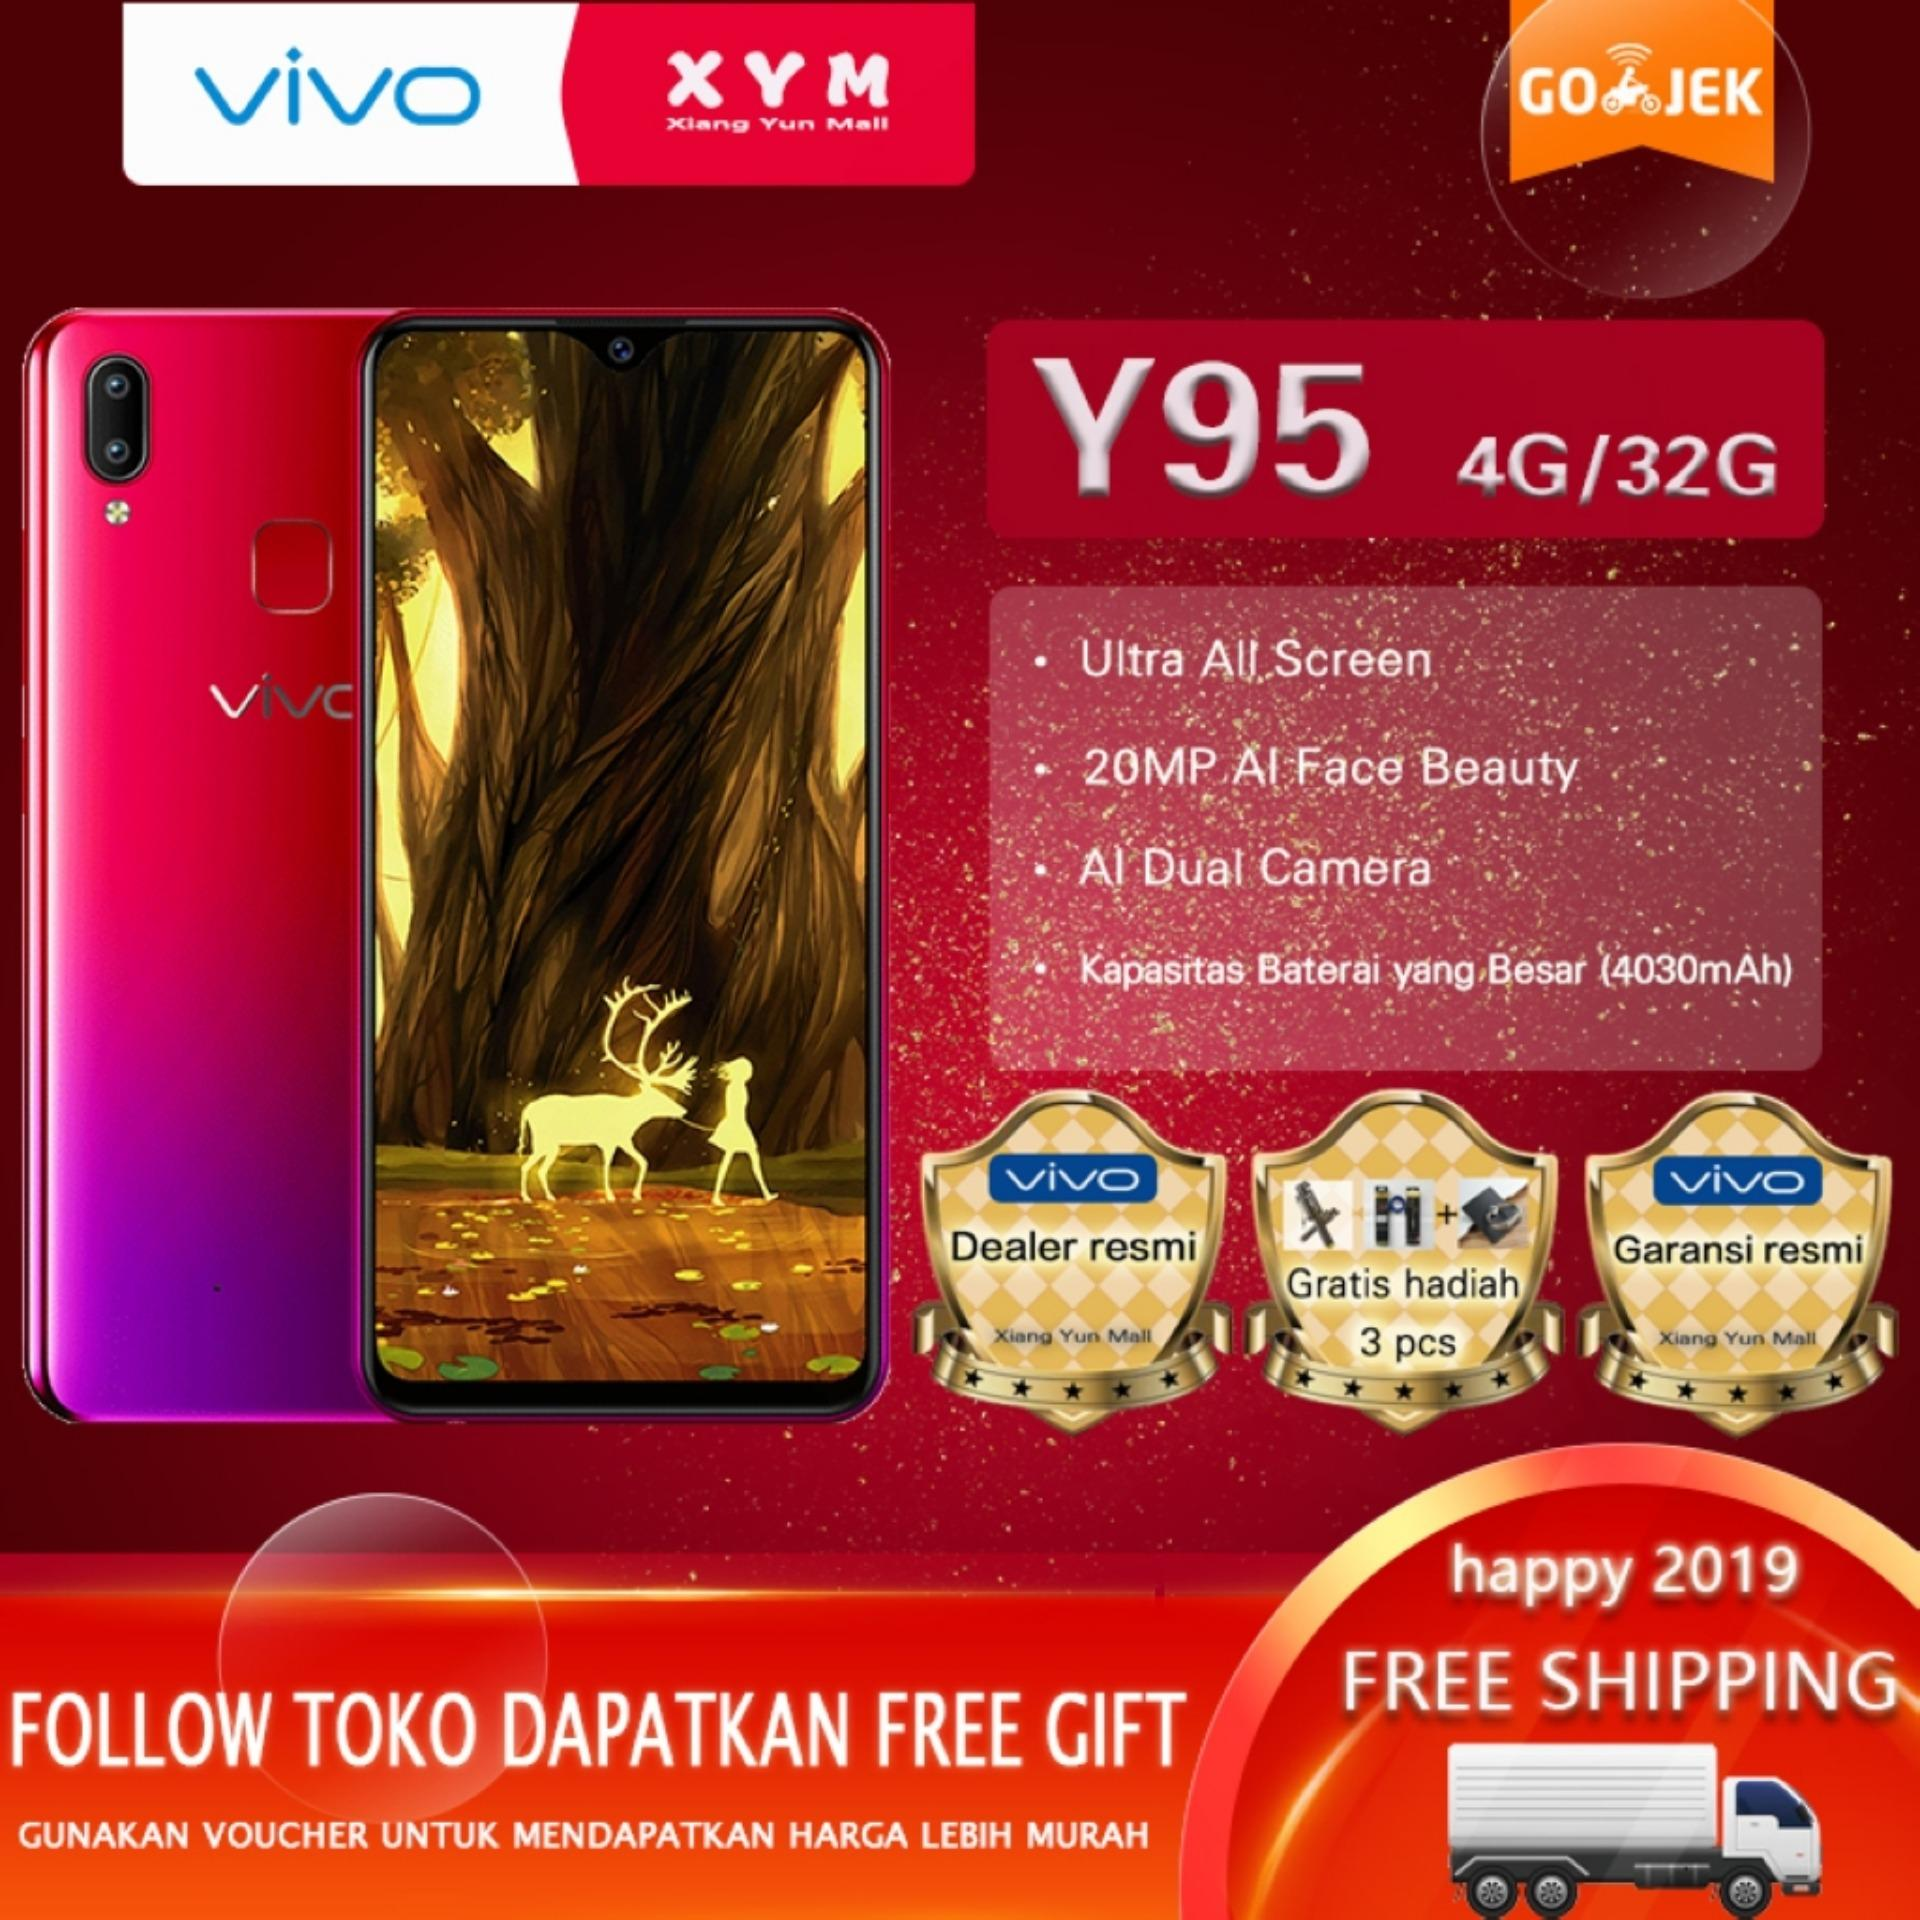 Vivo Y95 hp 4G/32G - COD, Gratis Ongkir, AI Dual Rear Camera, 4030mAh Battery, Garansi resmi [ Please use the voucher ]